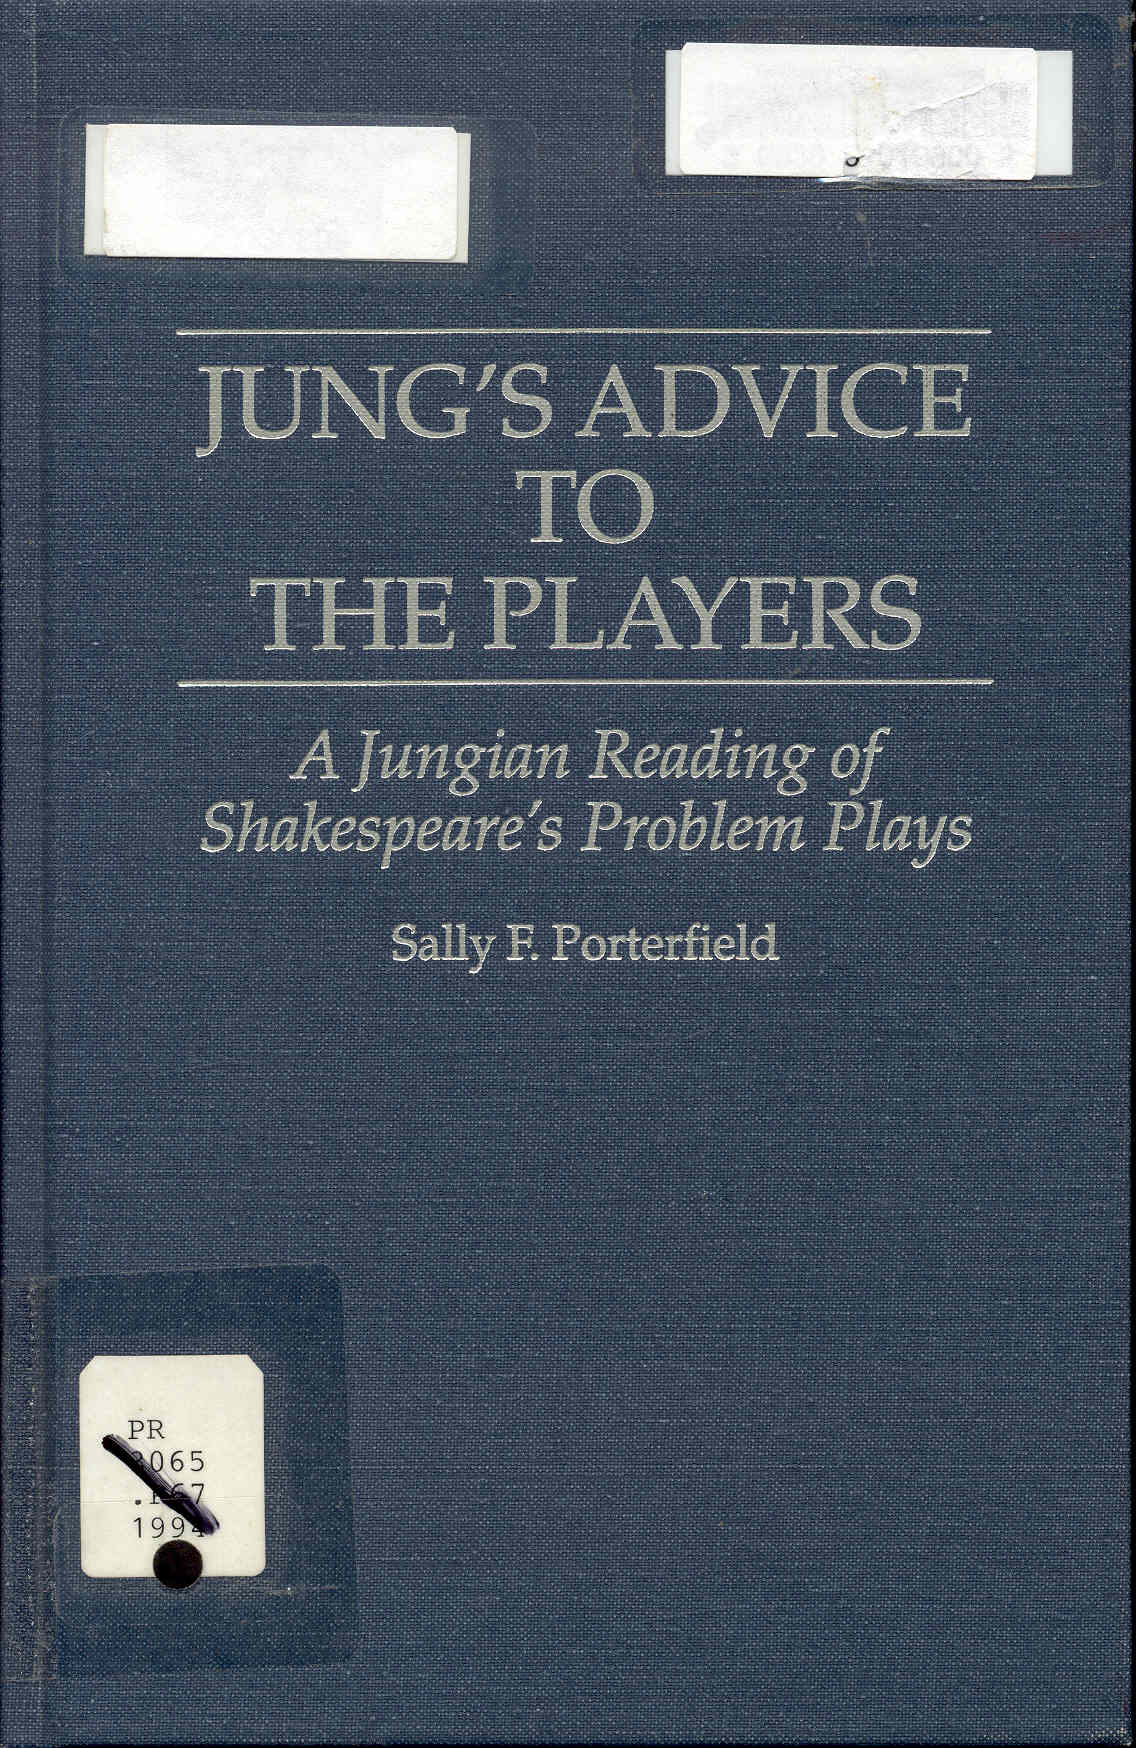 Image for Jung's Advice to the Players: A Jungian Reading of Shakespeare's Problem Plays